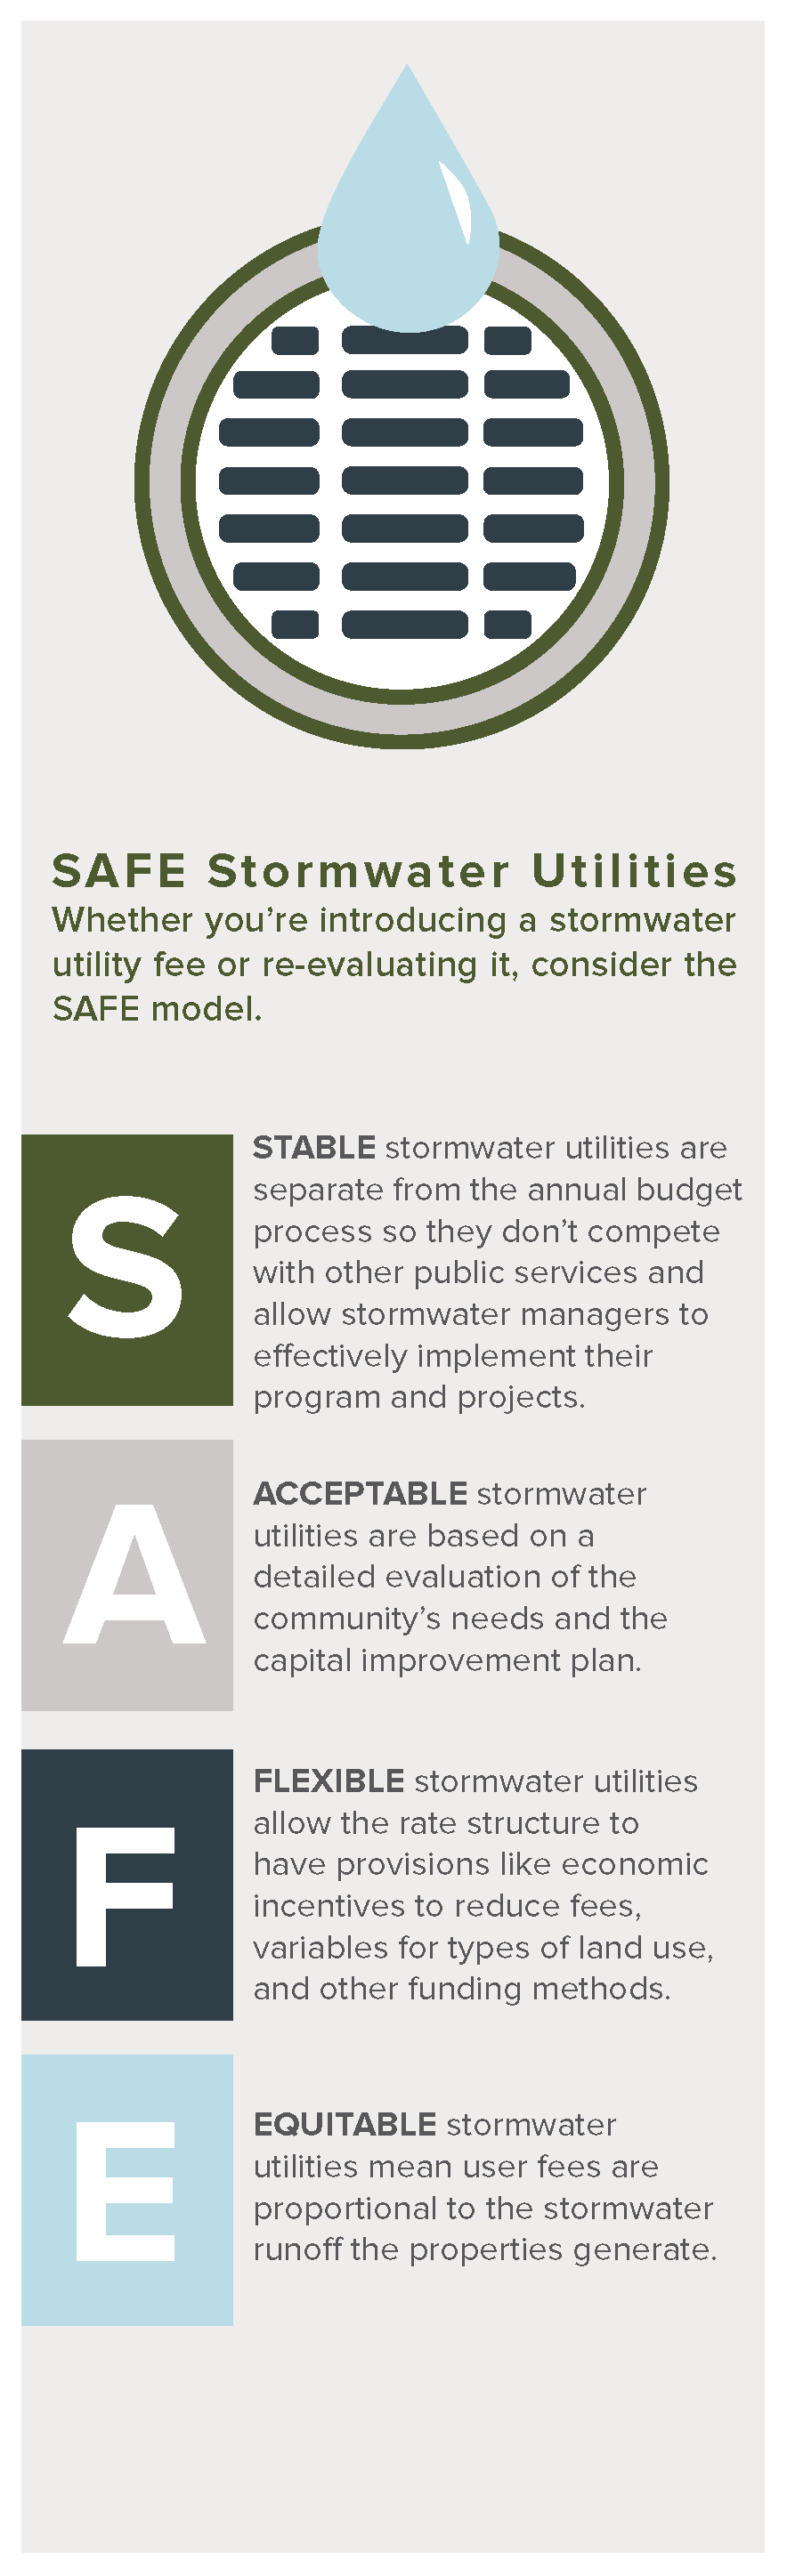 SAFE Stormwater Utilities